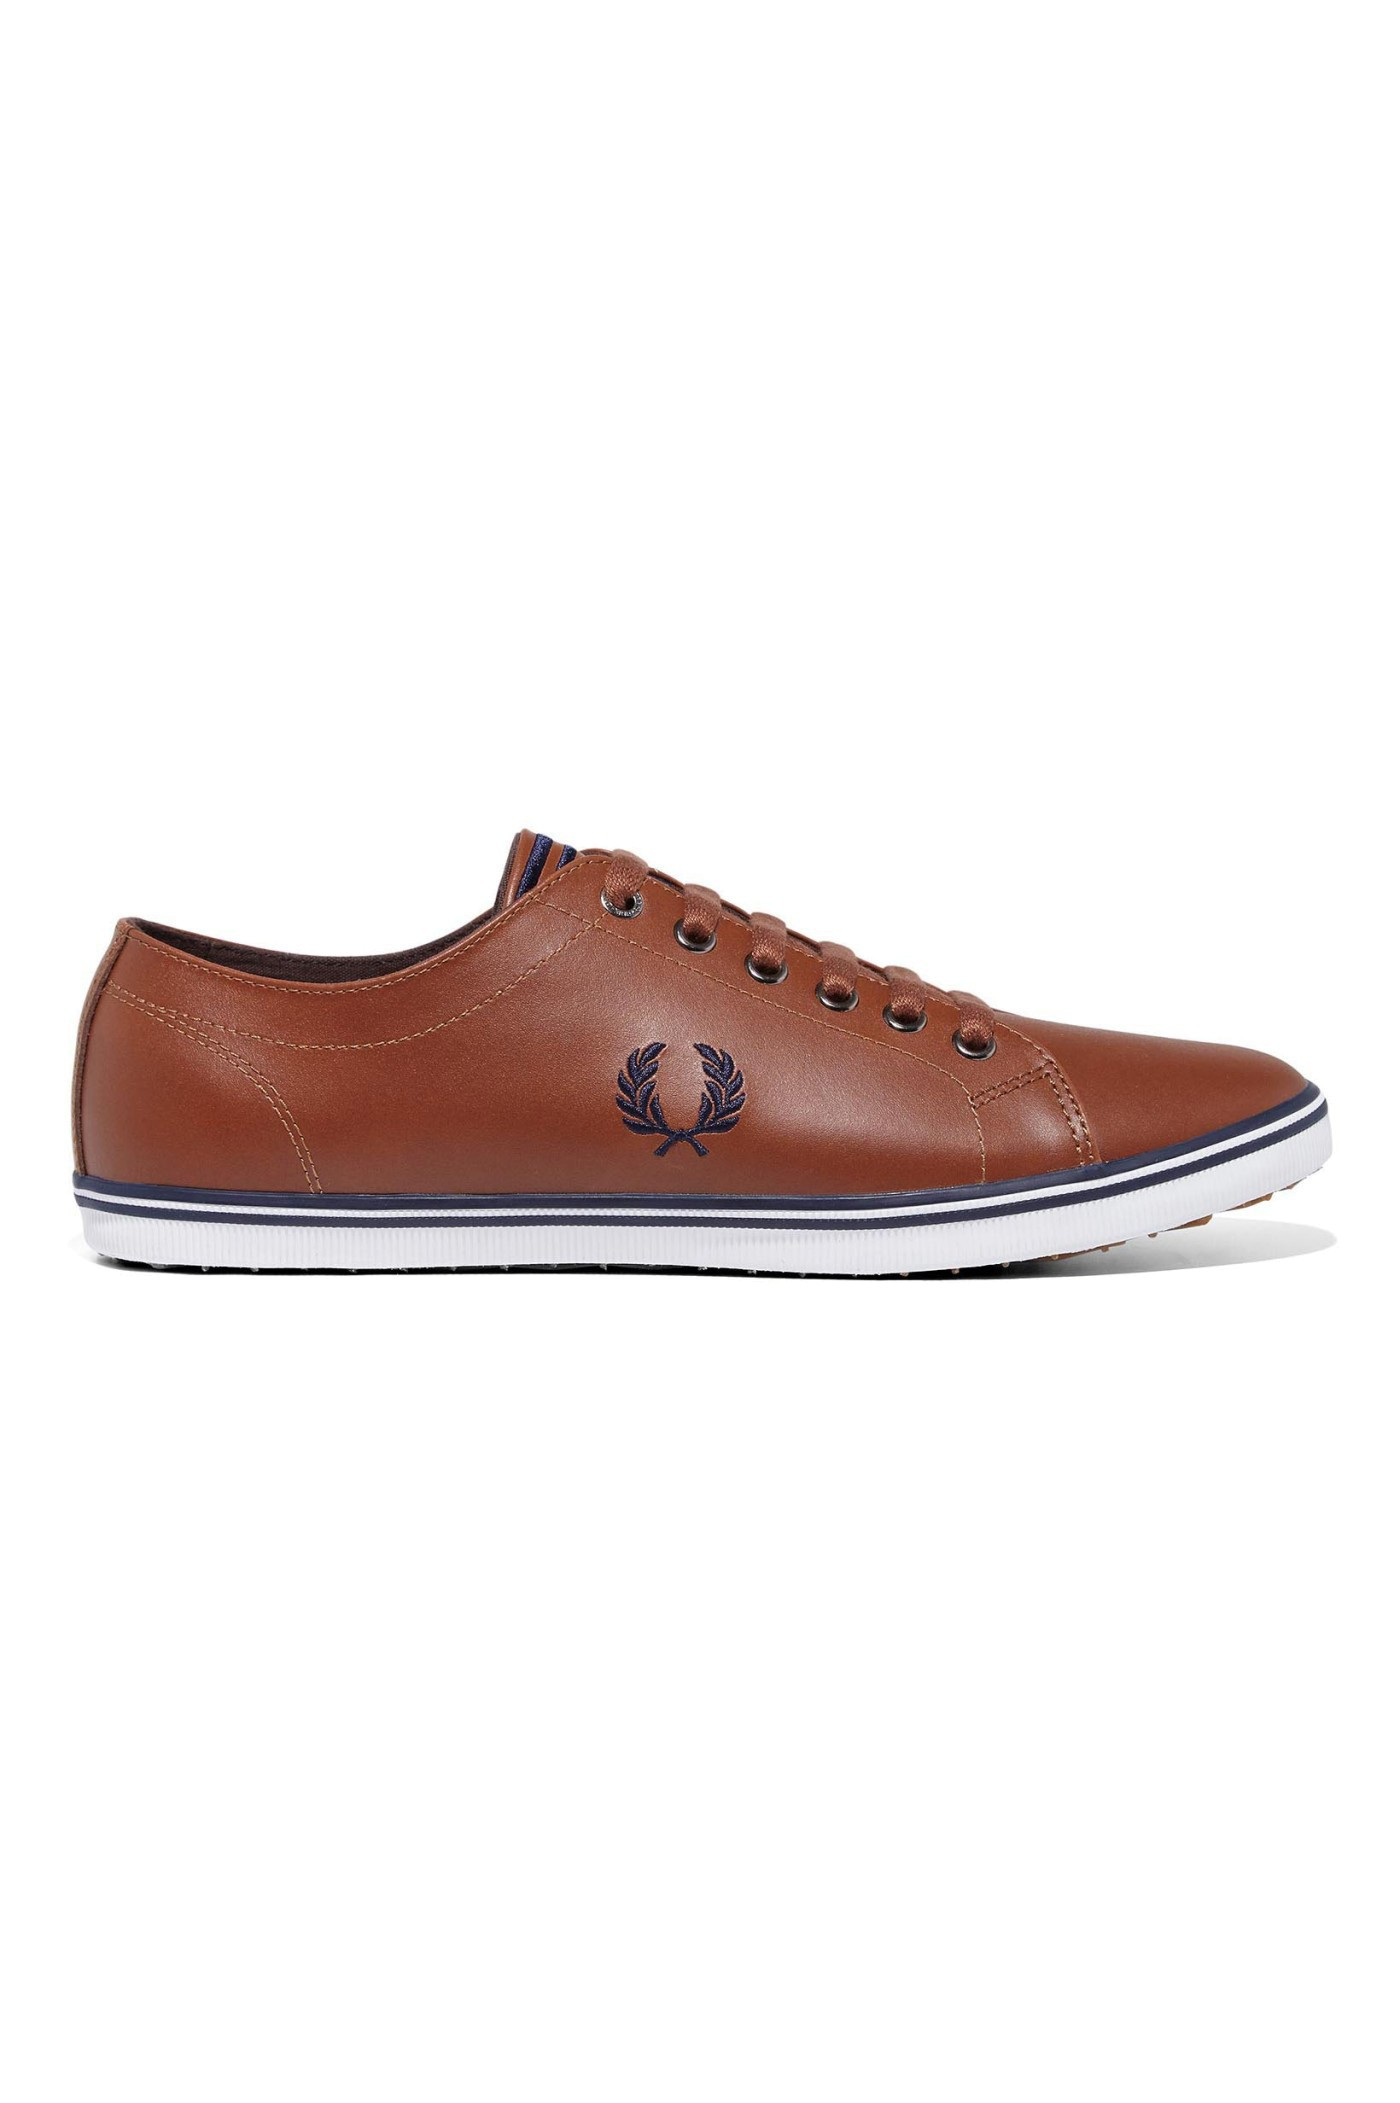 CHAUSSURES FRED PERRY KINGSTON B… iAhqFK3gl